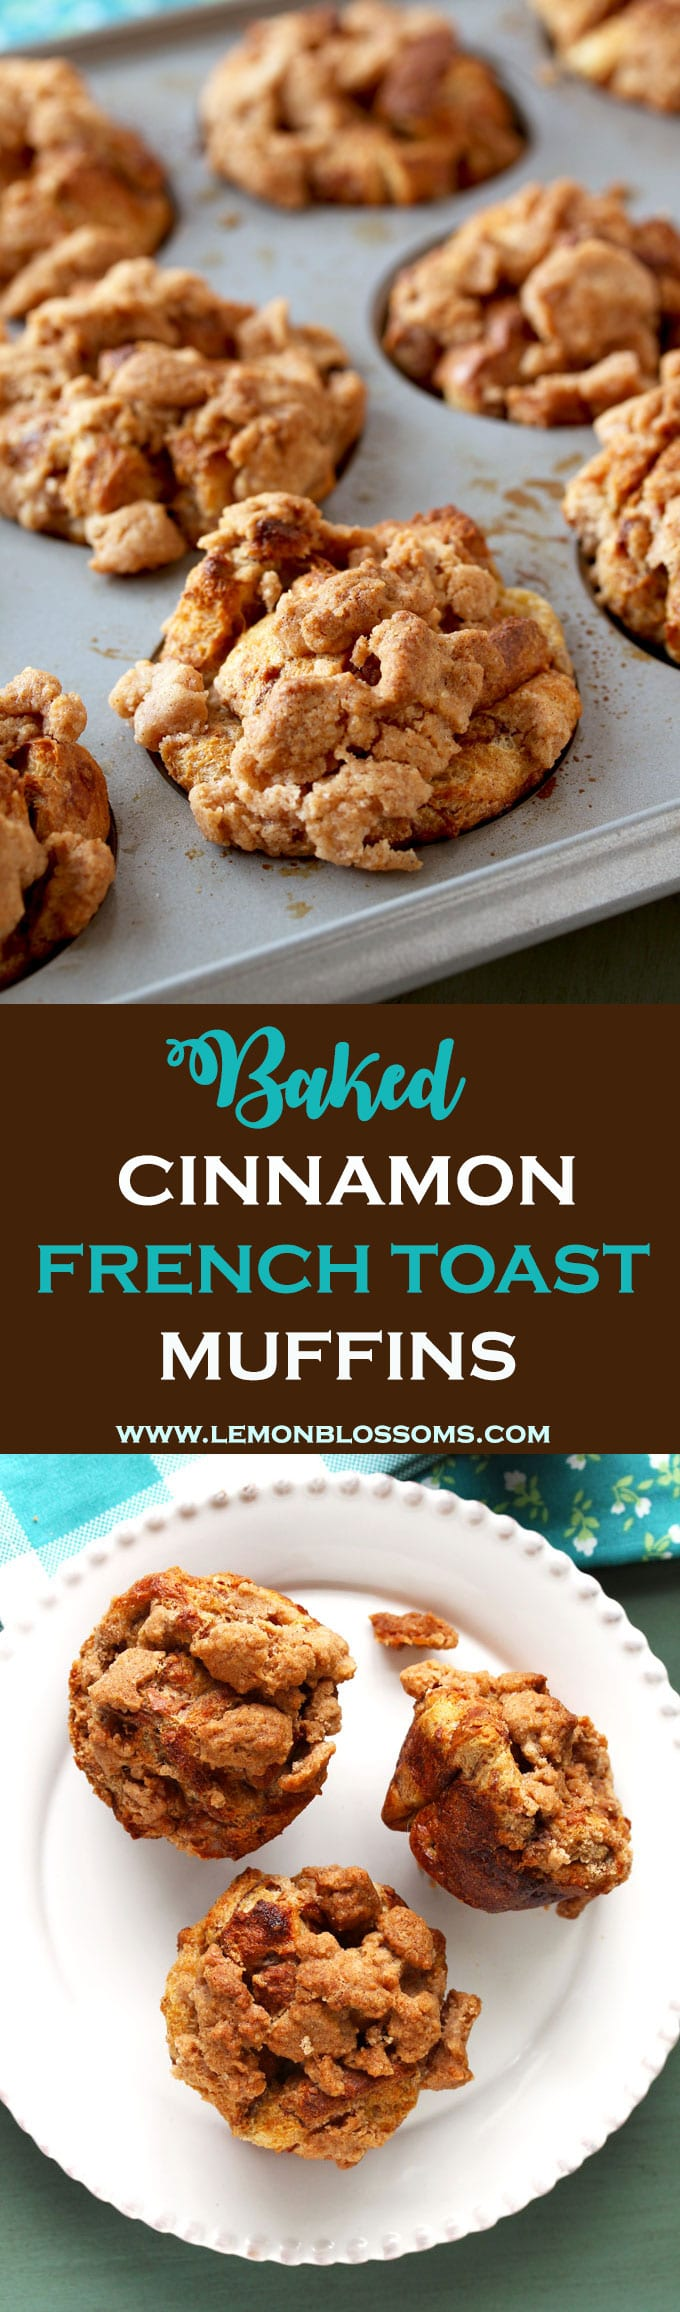 These Baked Cinnamon French Toast Muffins are portable and the perfect grab-and-go breakfast. Their delicious crunchy cinnamon sugar topping makes them irresistible!!! Baking time  under 30 minutes - Make-ahead breakfast or brunch - Freezes well - Great for big gatherings!